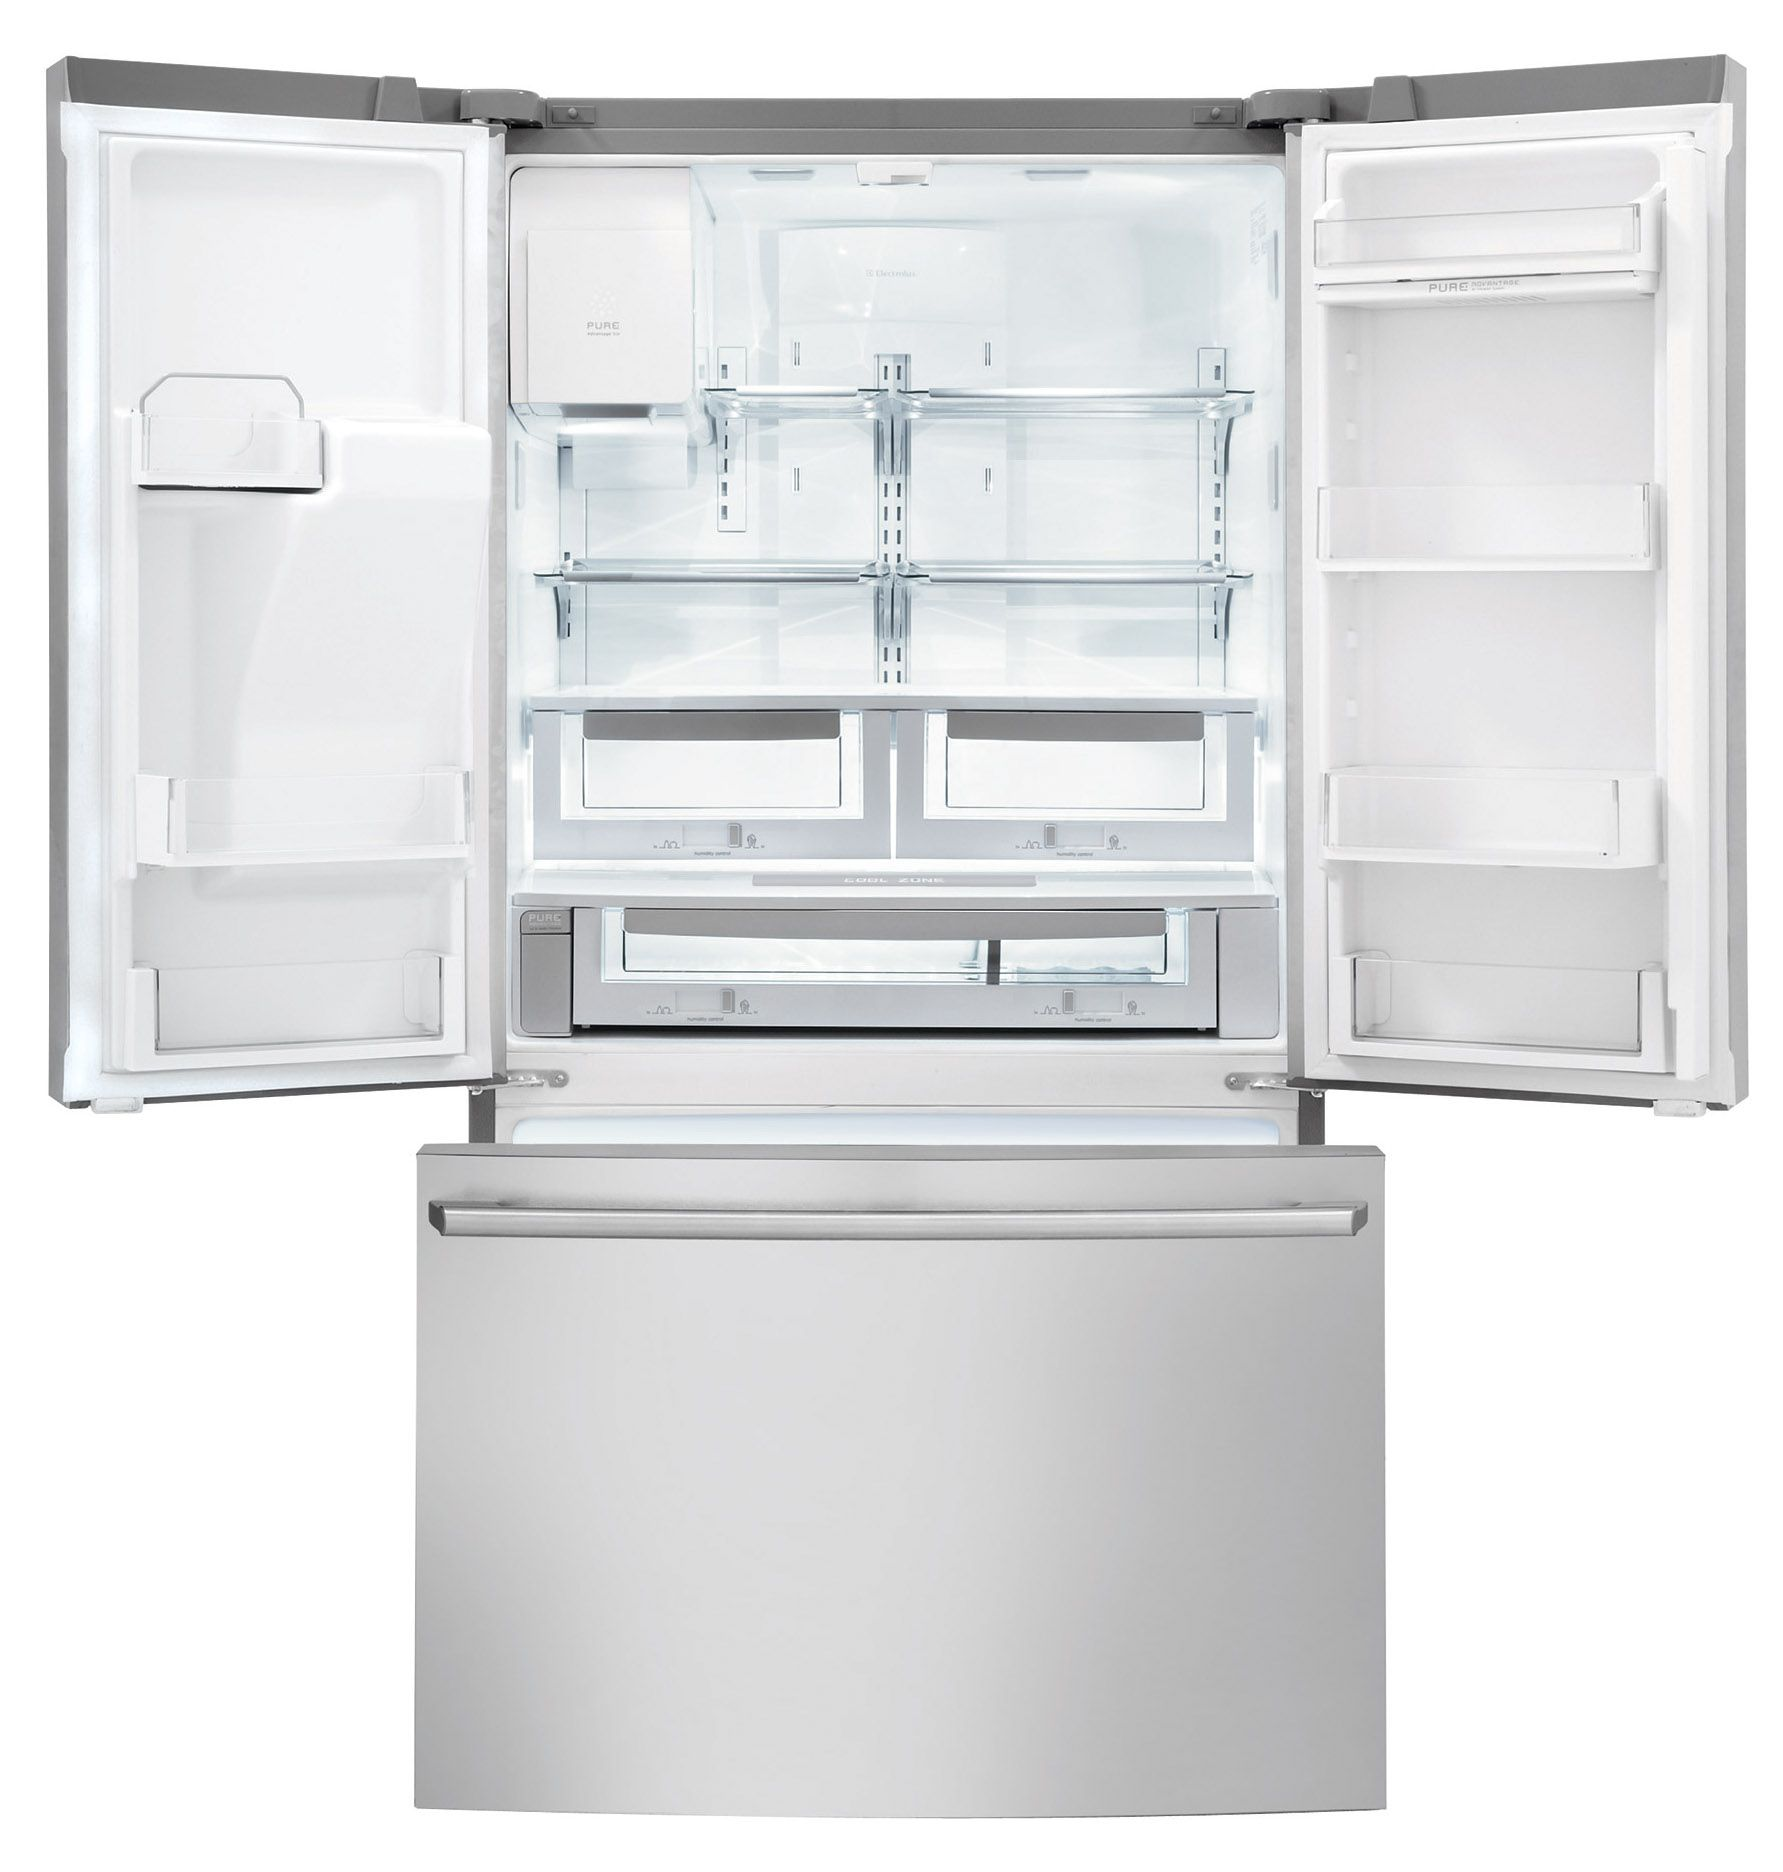 Electrolux EI28BS65KS 27.8 cu. ft. French Door Refrigerator with IQ-Touch™ Controls - Stainless Steel